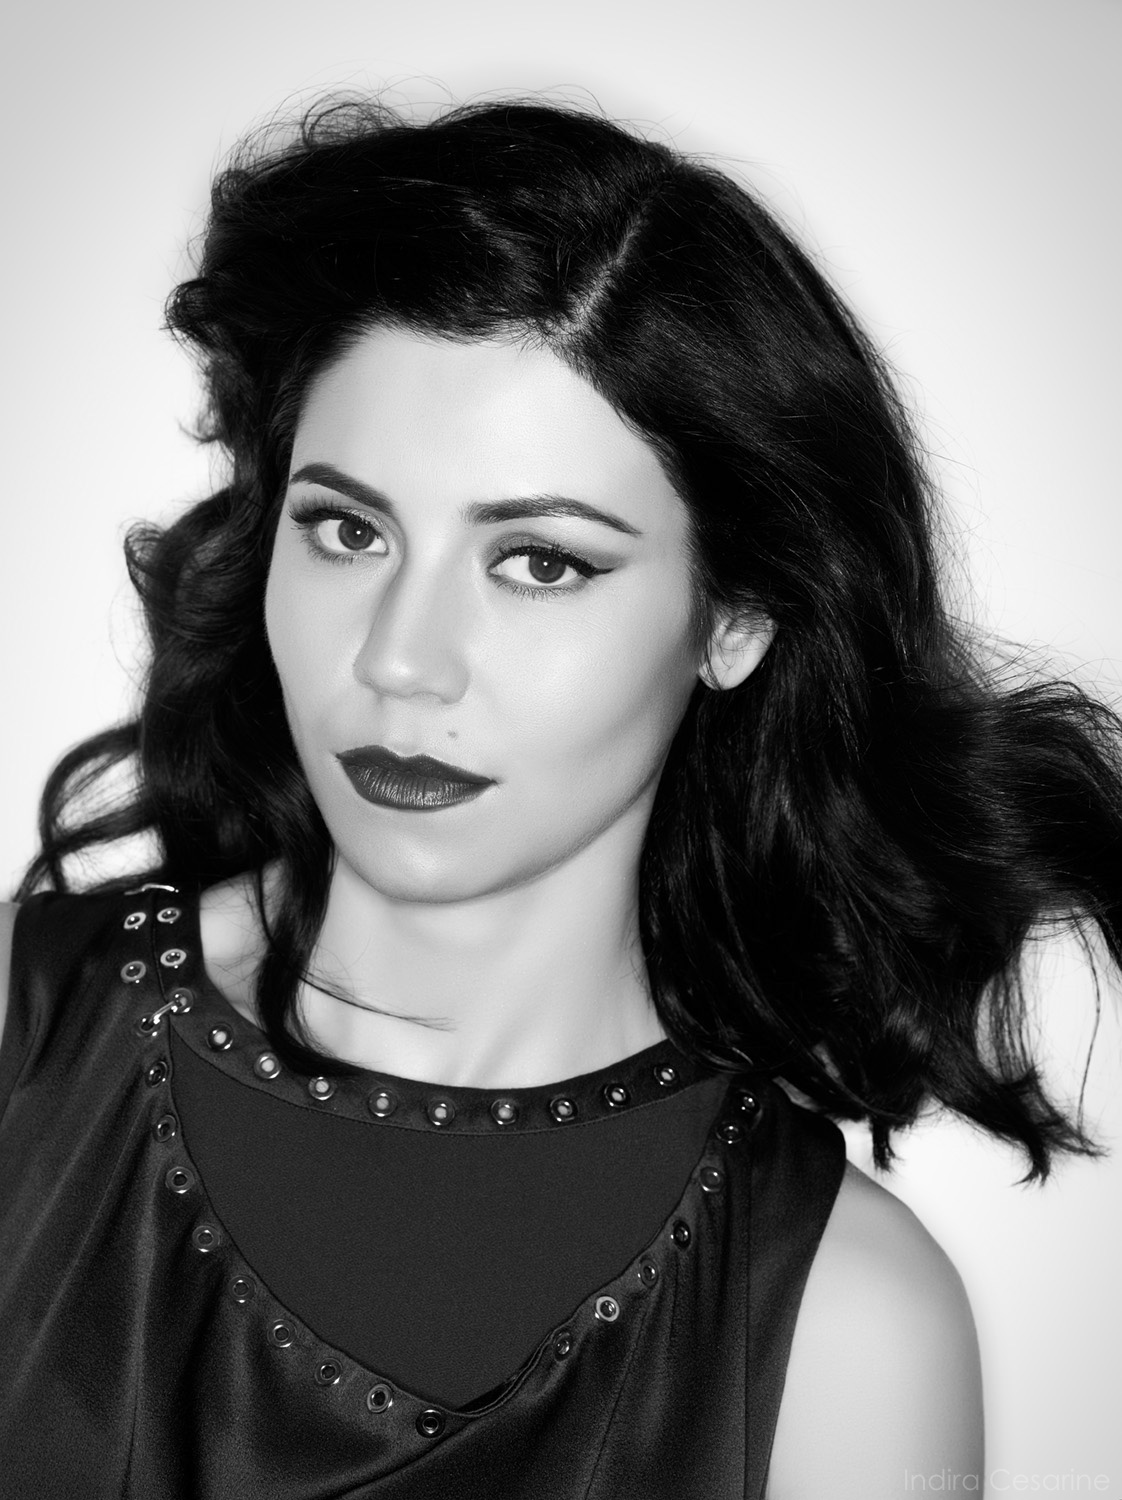 Marina-Diamonds-Photography-Indira-Cesarine-010.jpg